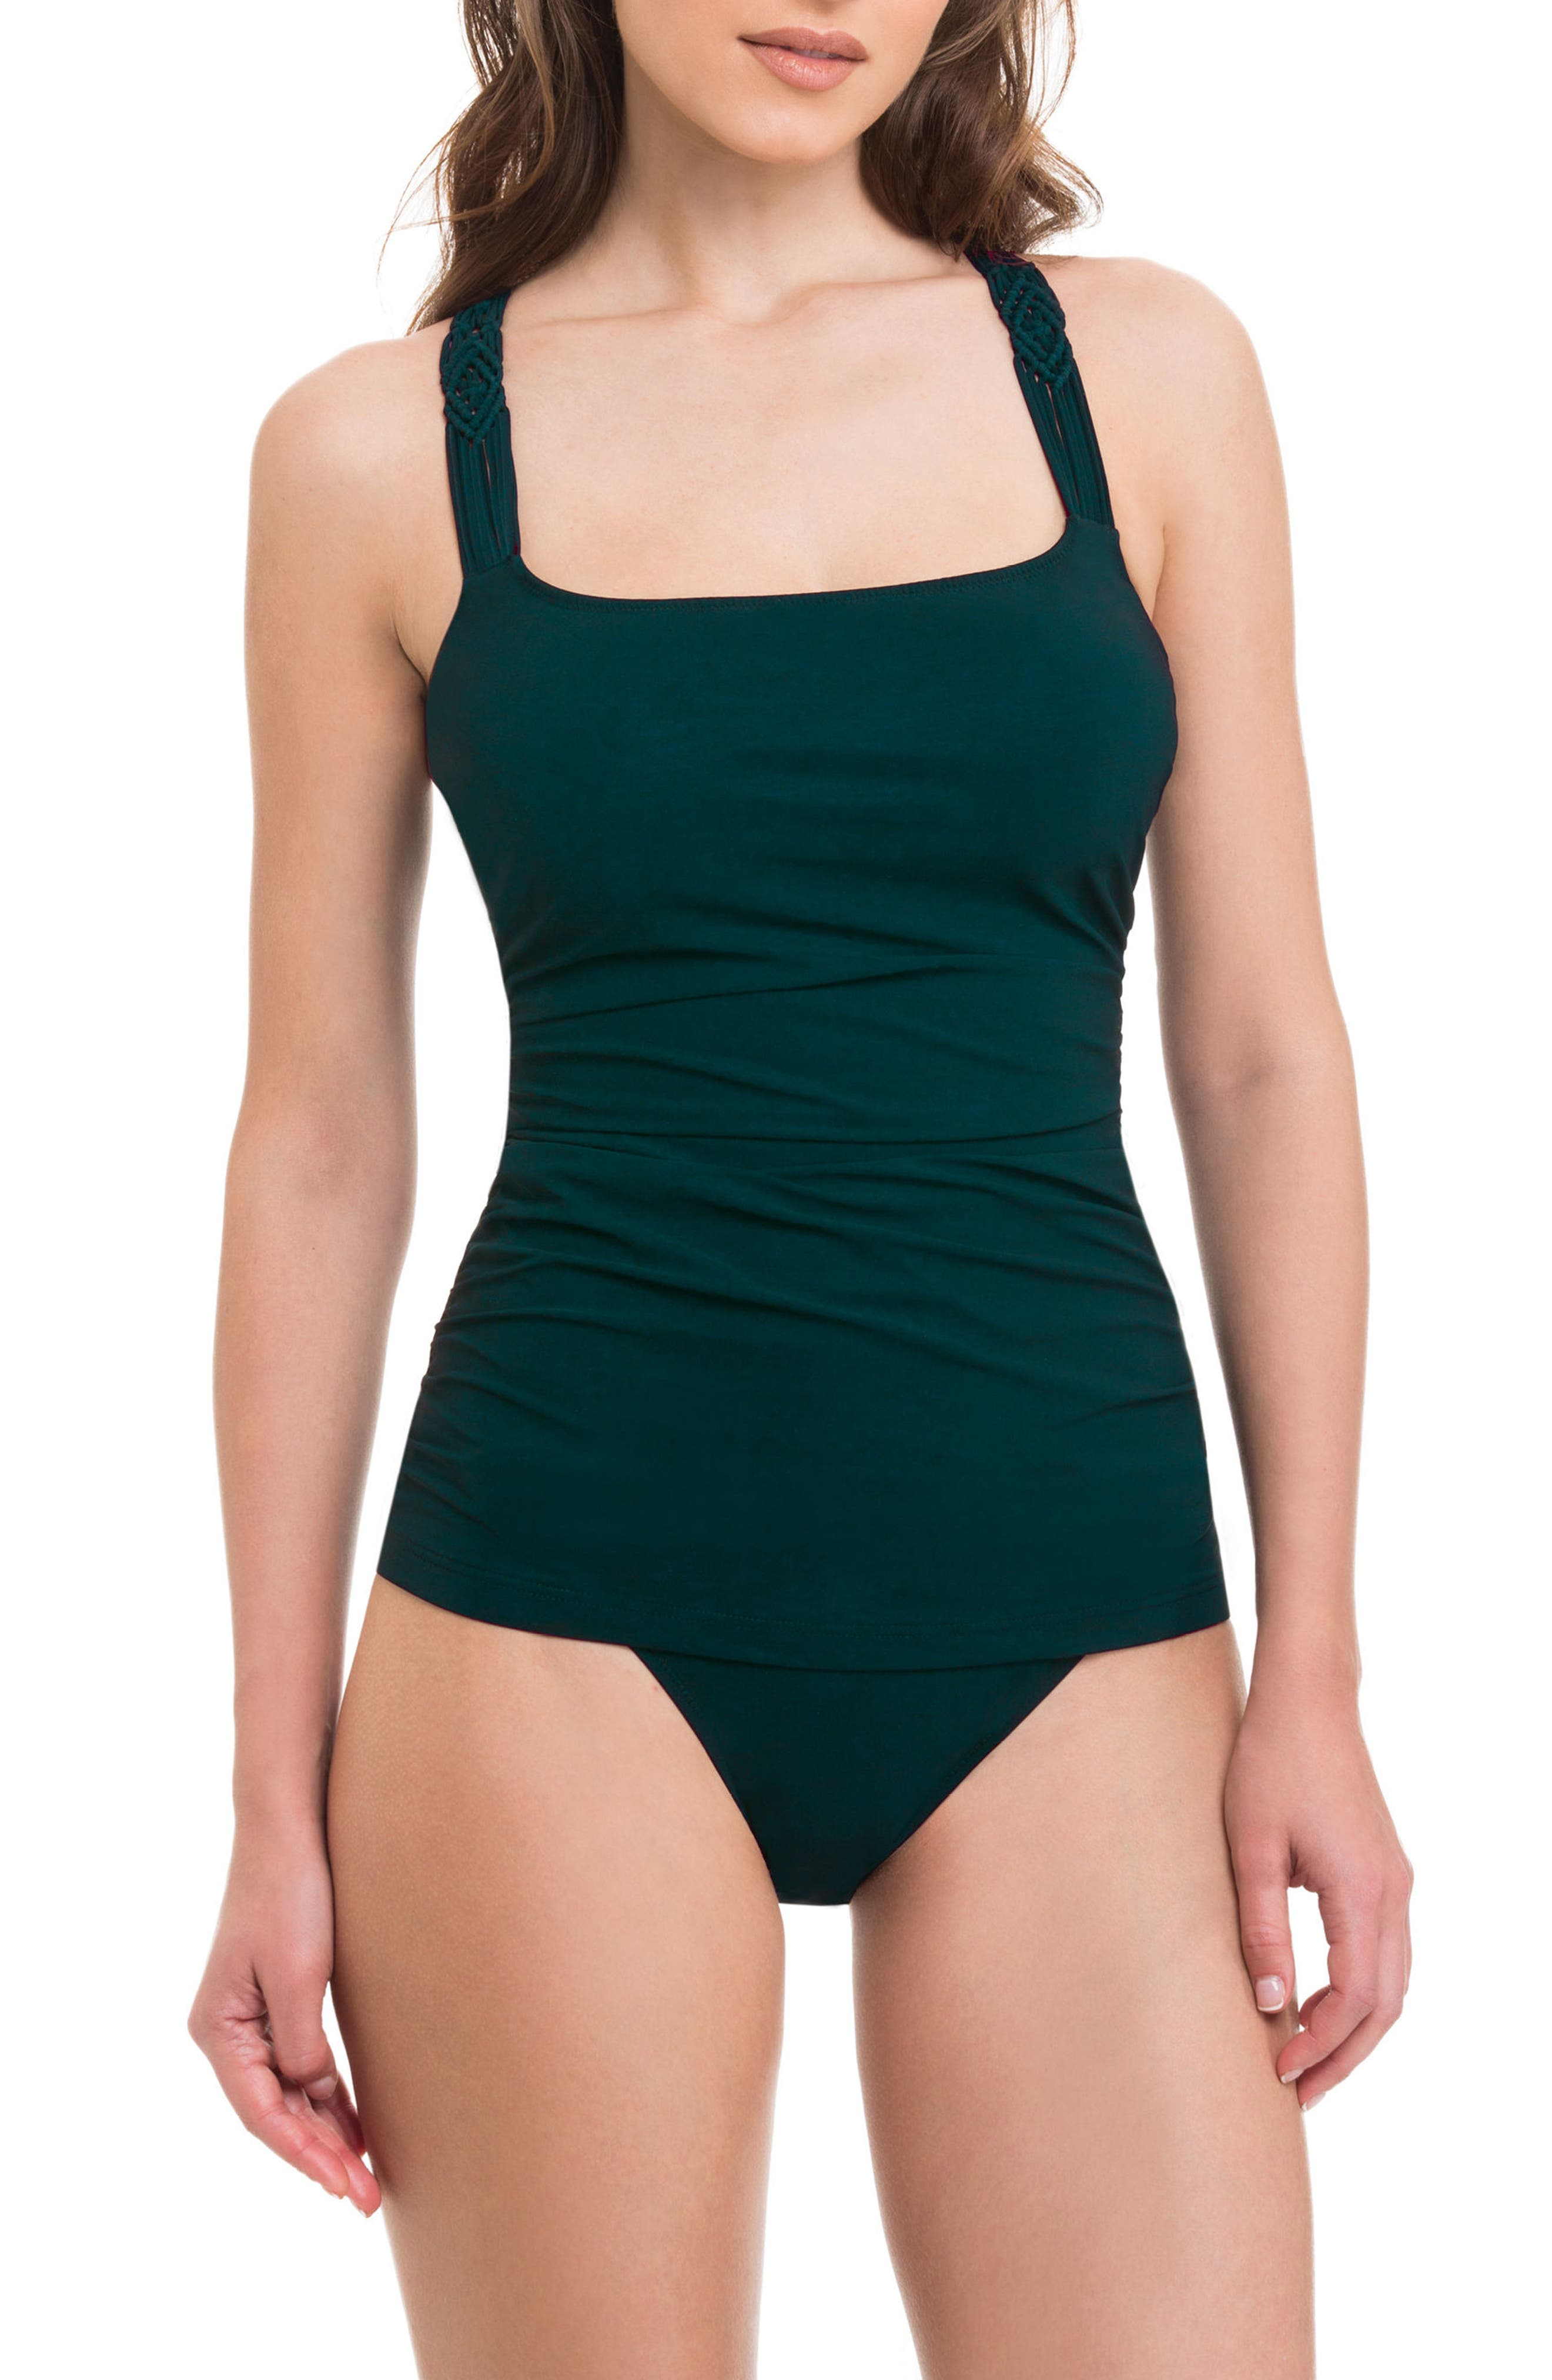 Main Image - Profile by Gottex Java Underwire Tankini Top (D-Cup)